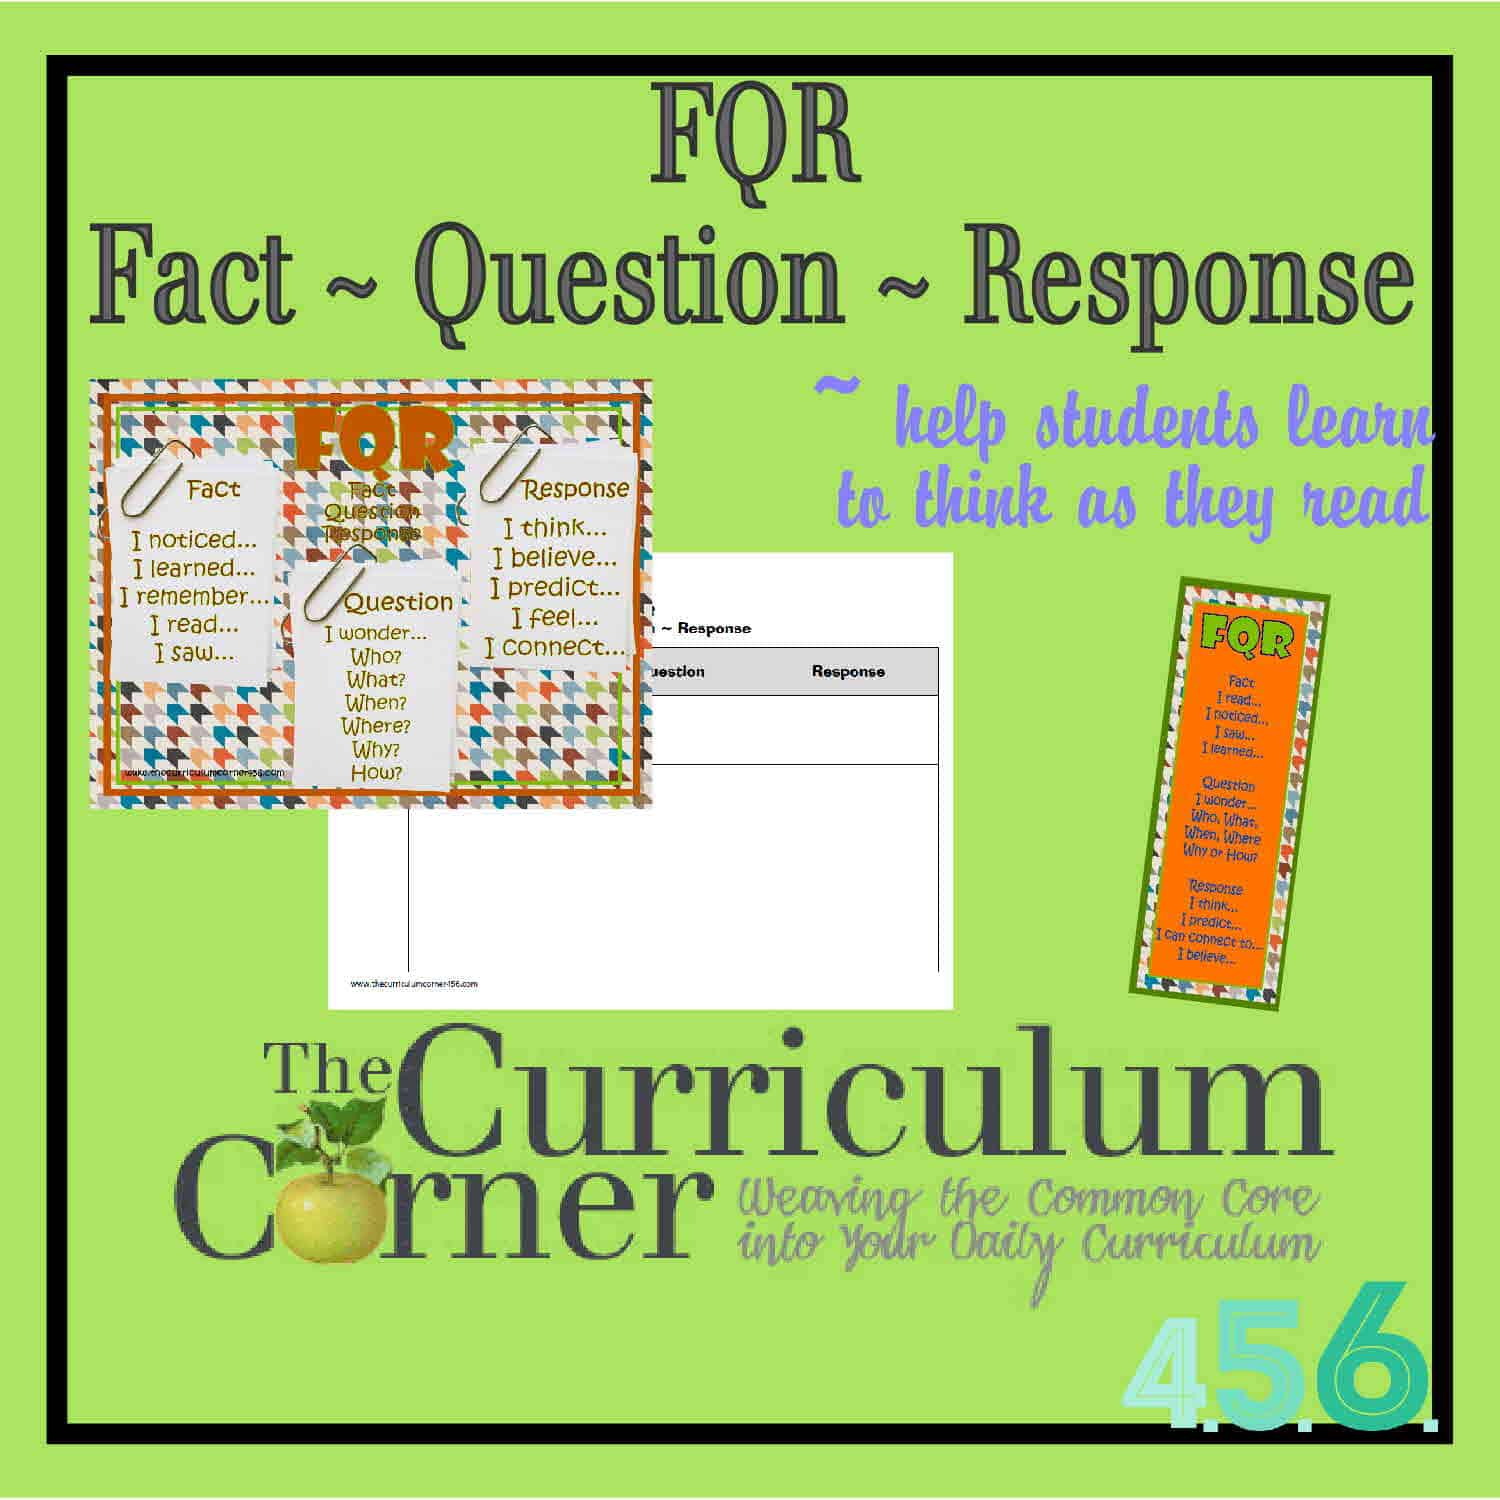 FQR – Fact, Question, Response